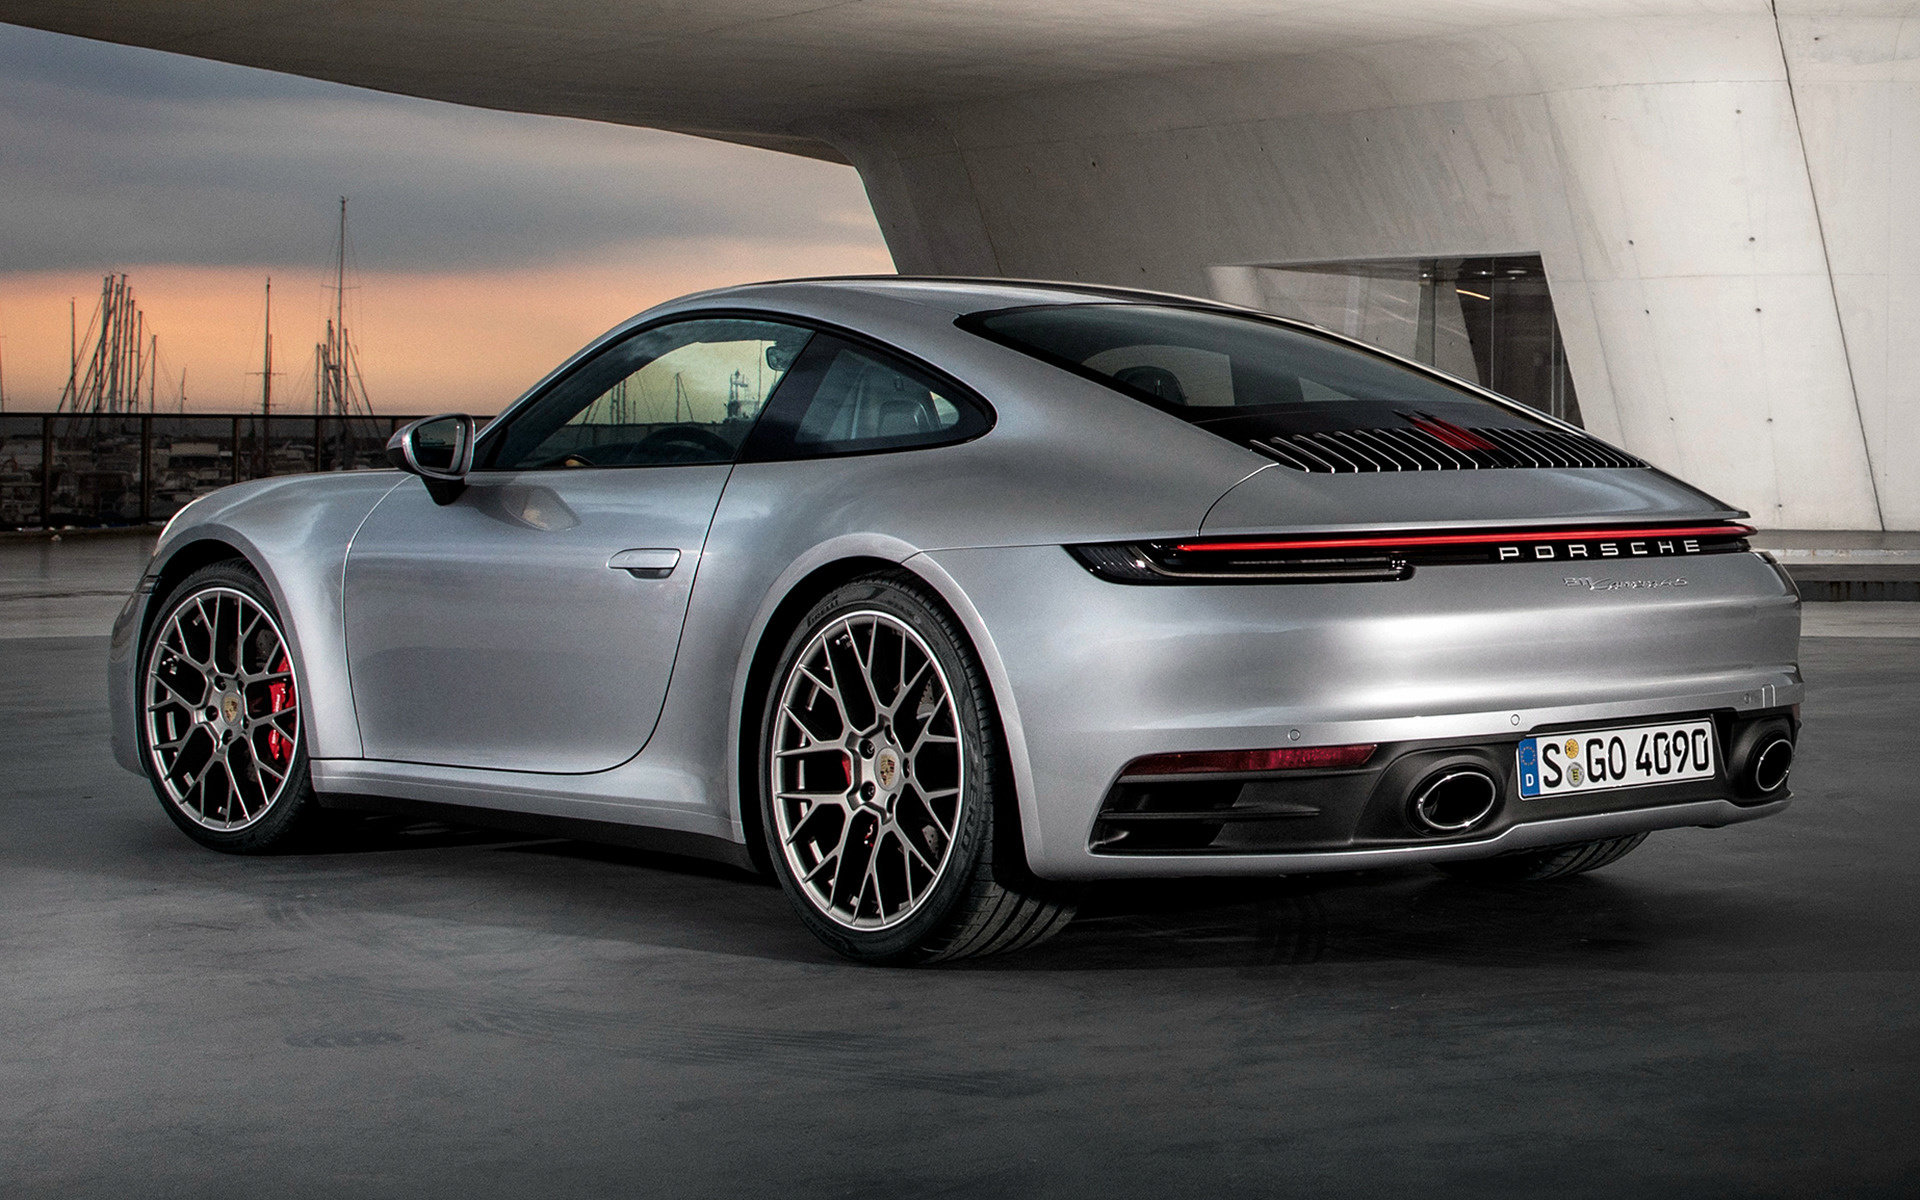 2019 porsche 911 carrera s wallpapers and hd images - Porsche 911 carrera s wallpaper ...